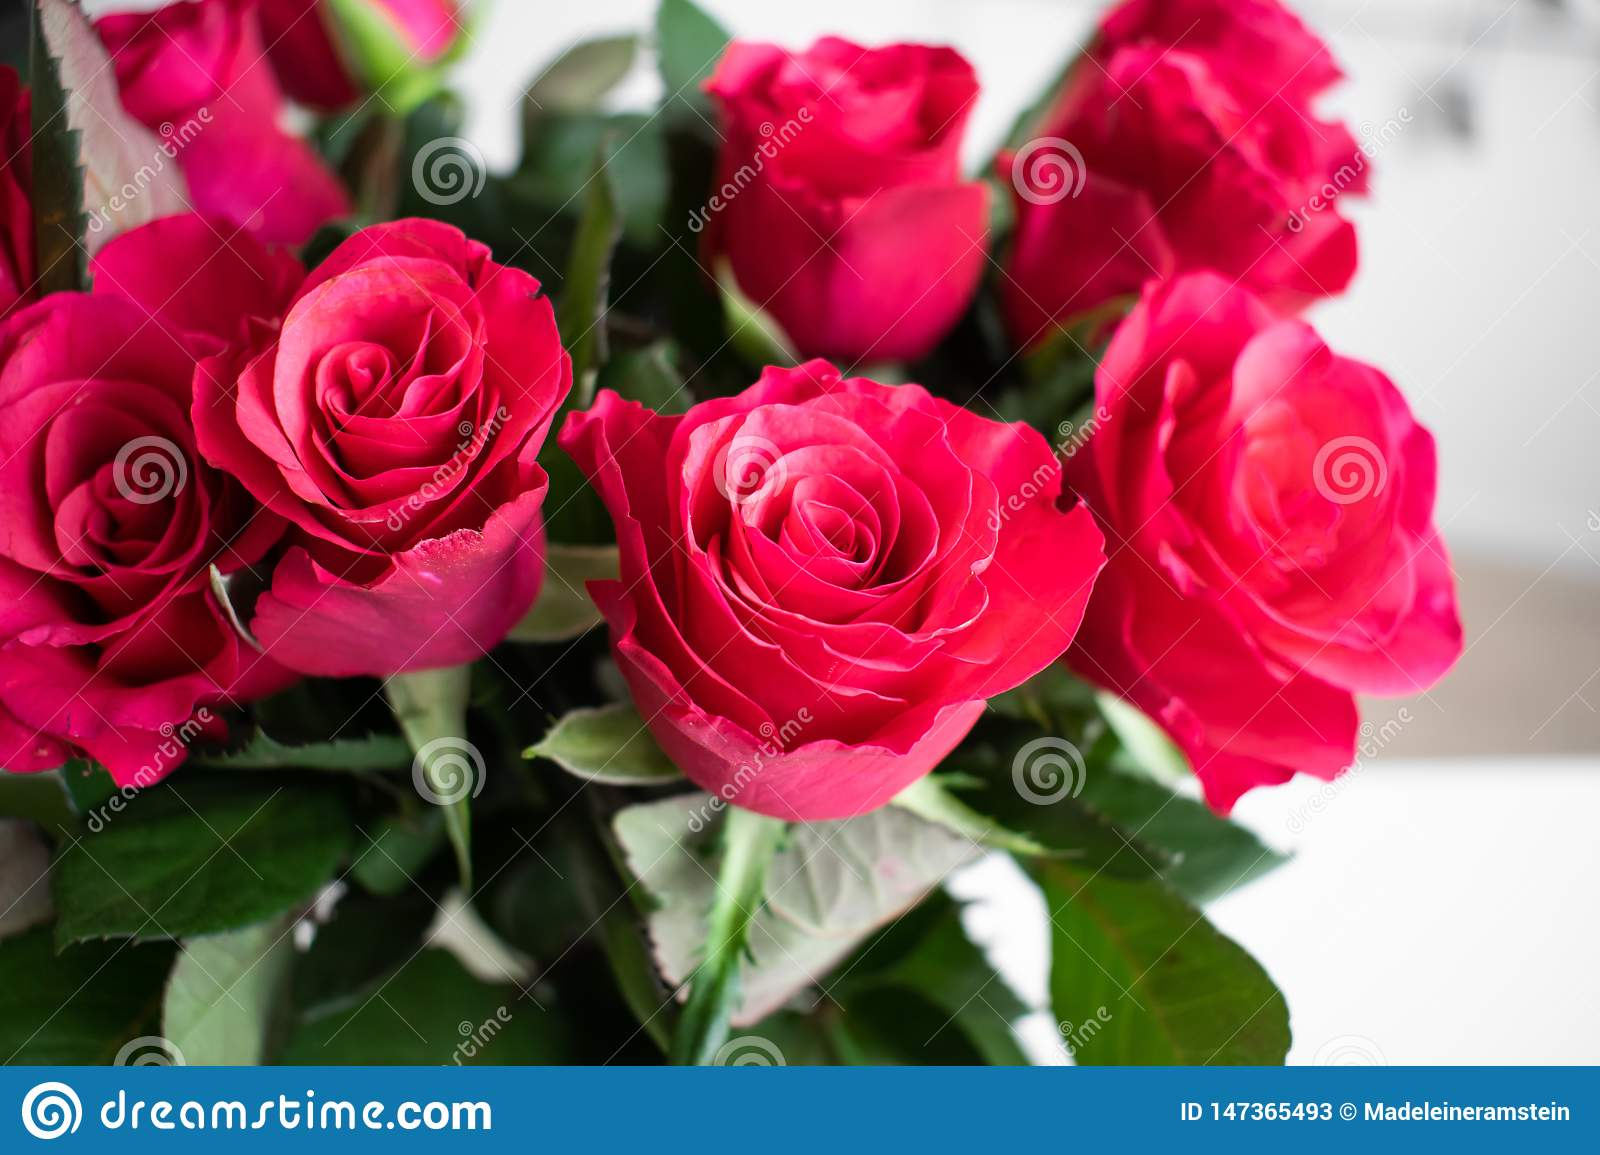 Red roses bouquet with a pink touch. Indoors with white background.